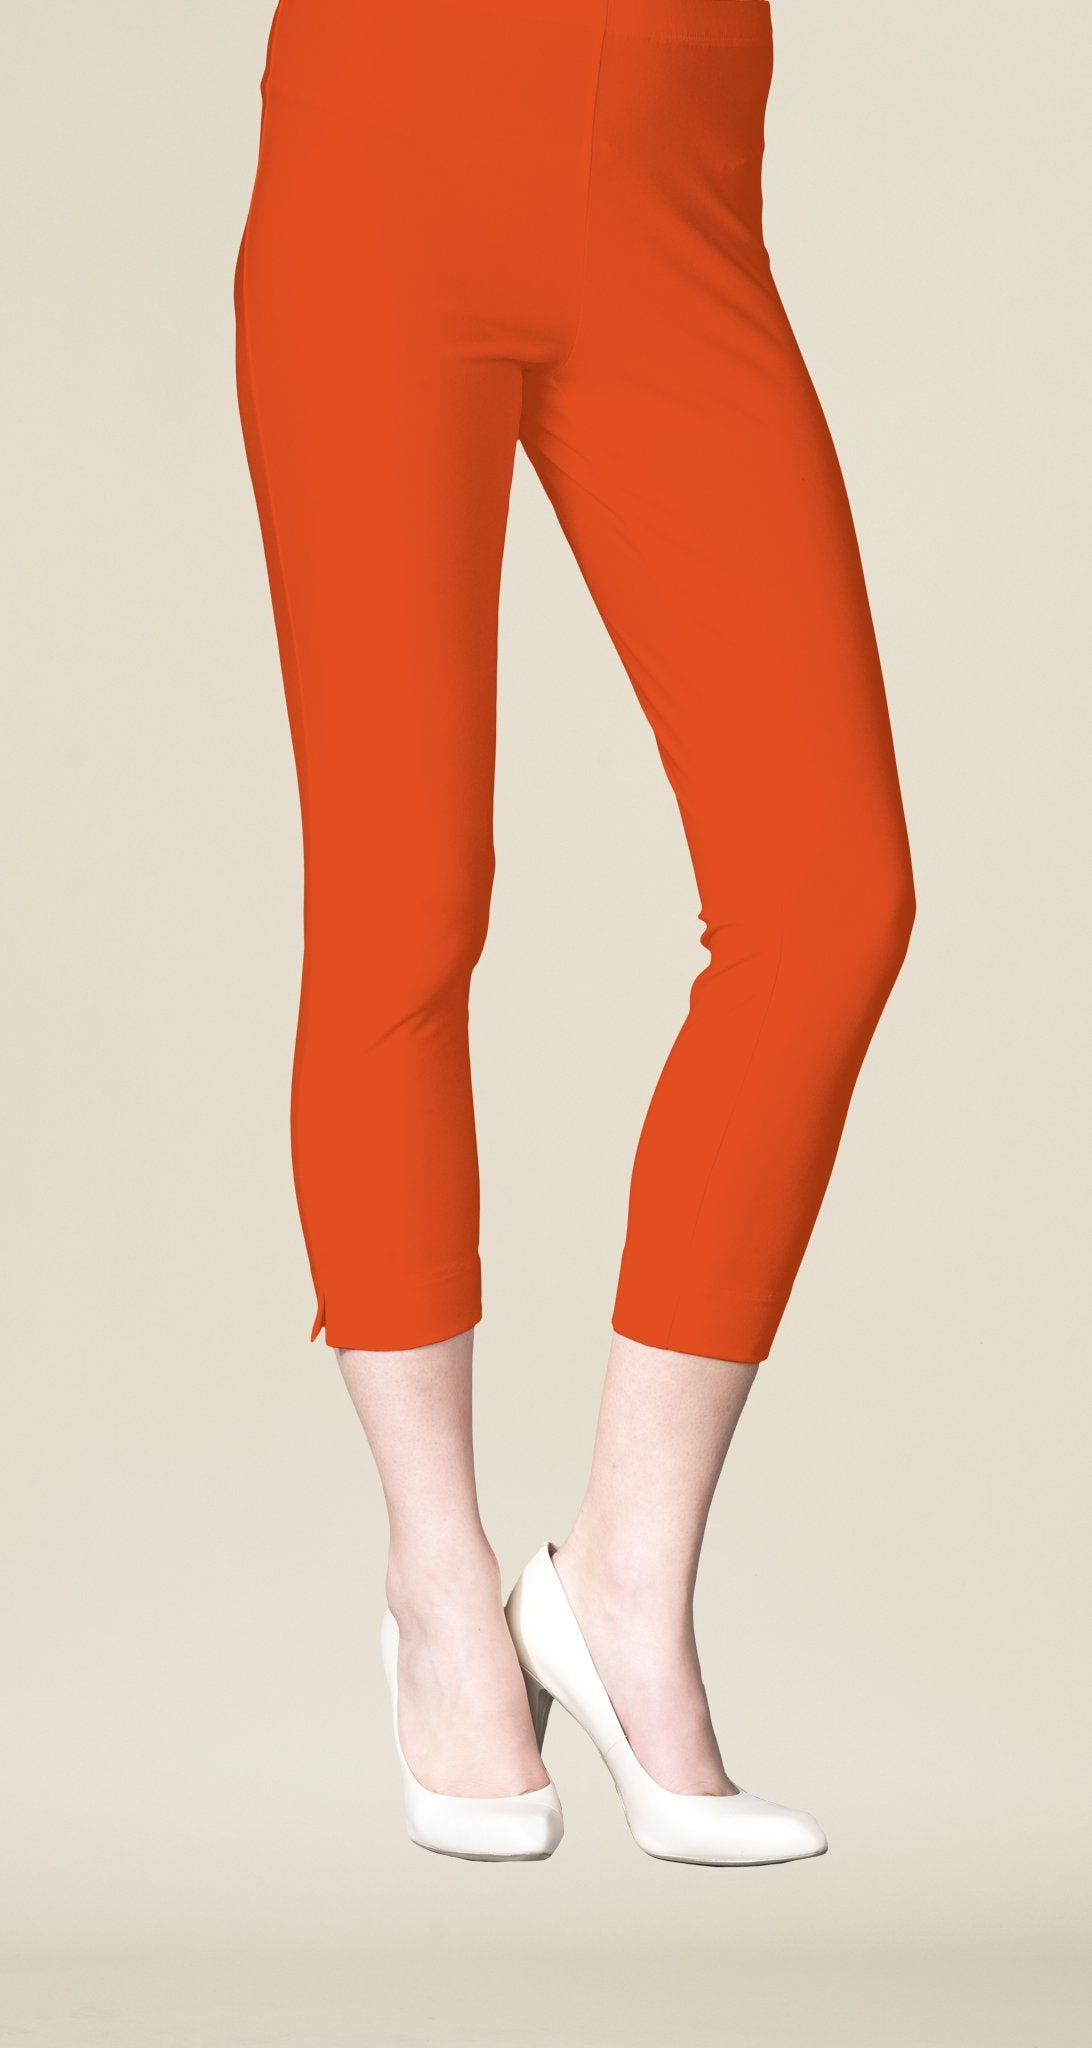 Pull On Capri - Orange- Final Sale!